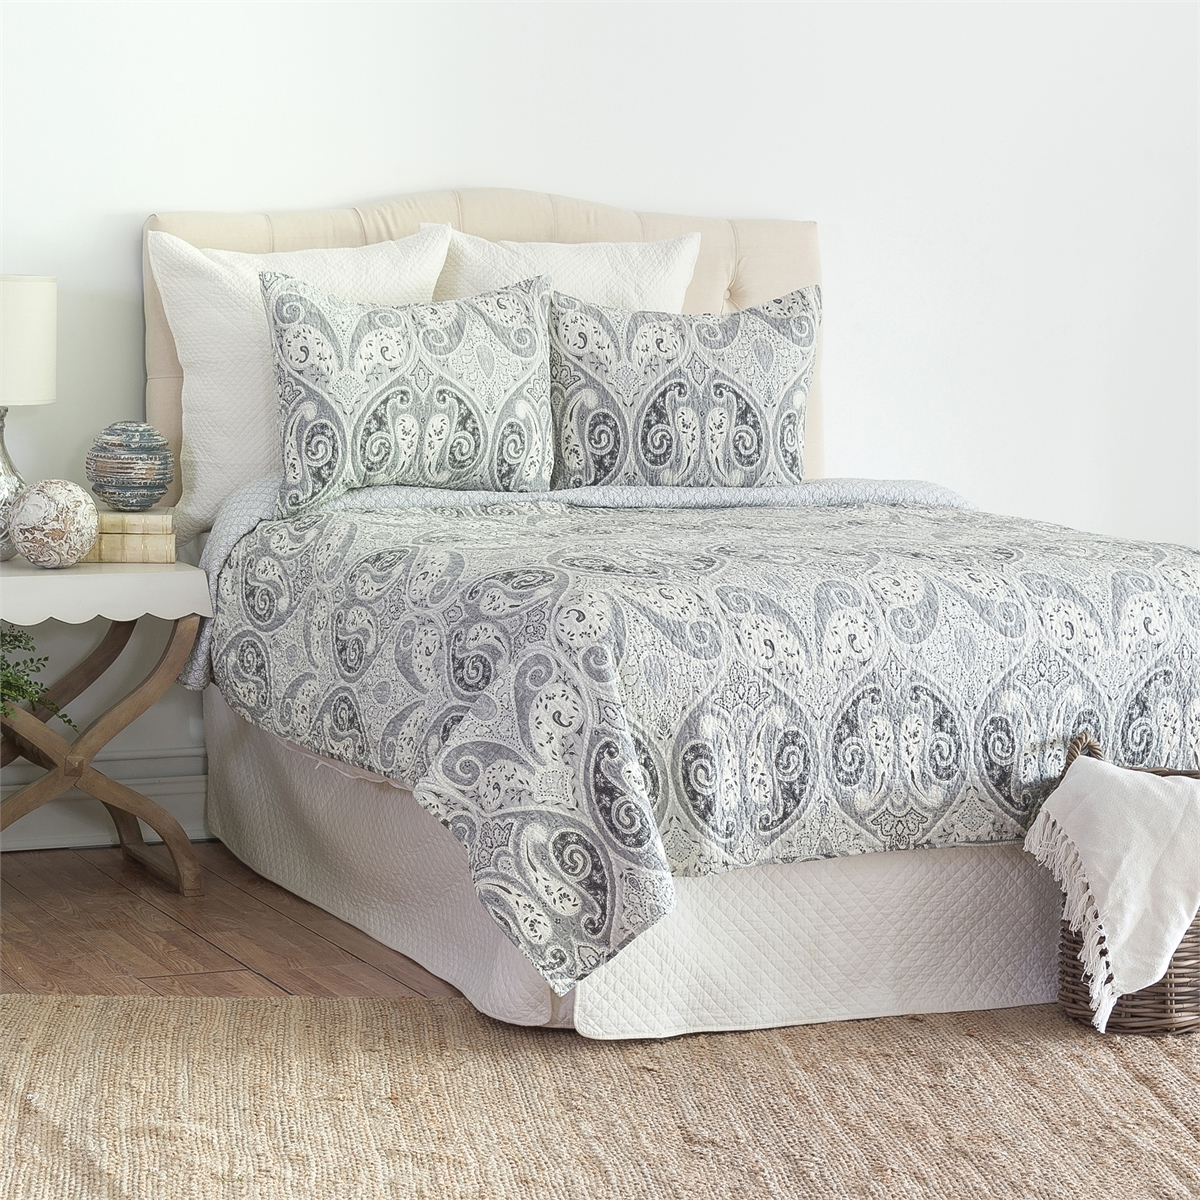 pug quilt home amazon bedding single x dp set gray duvet up cover close kitchen uk face co pugsy dog